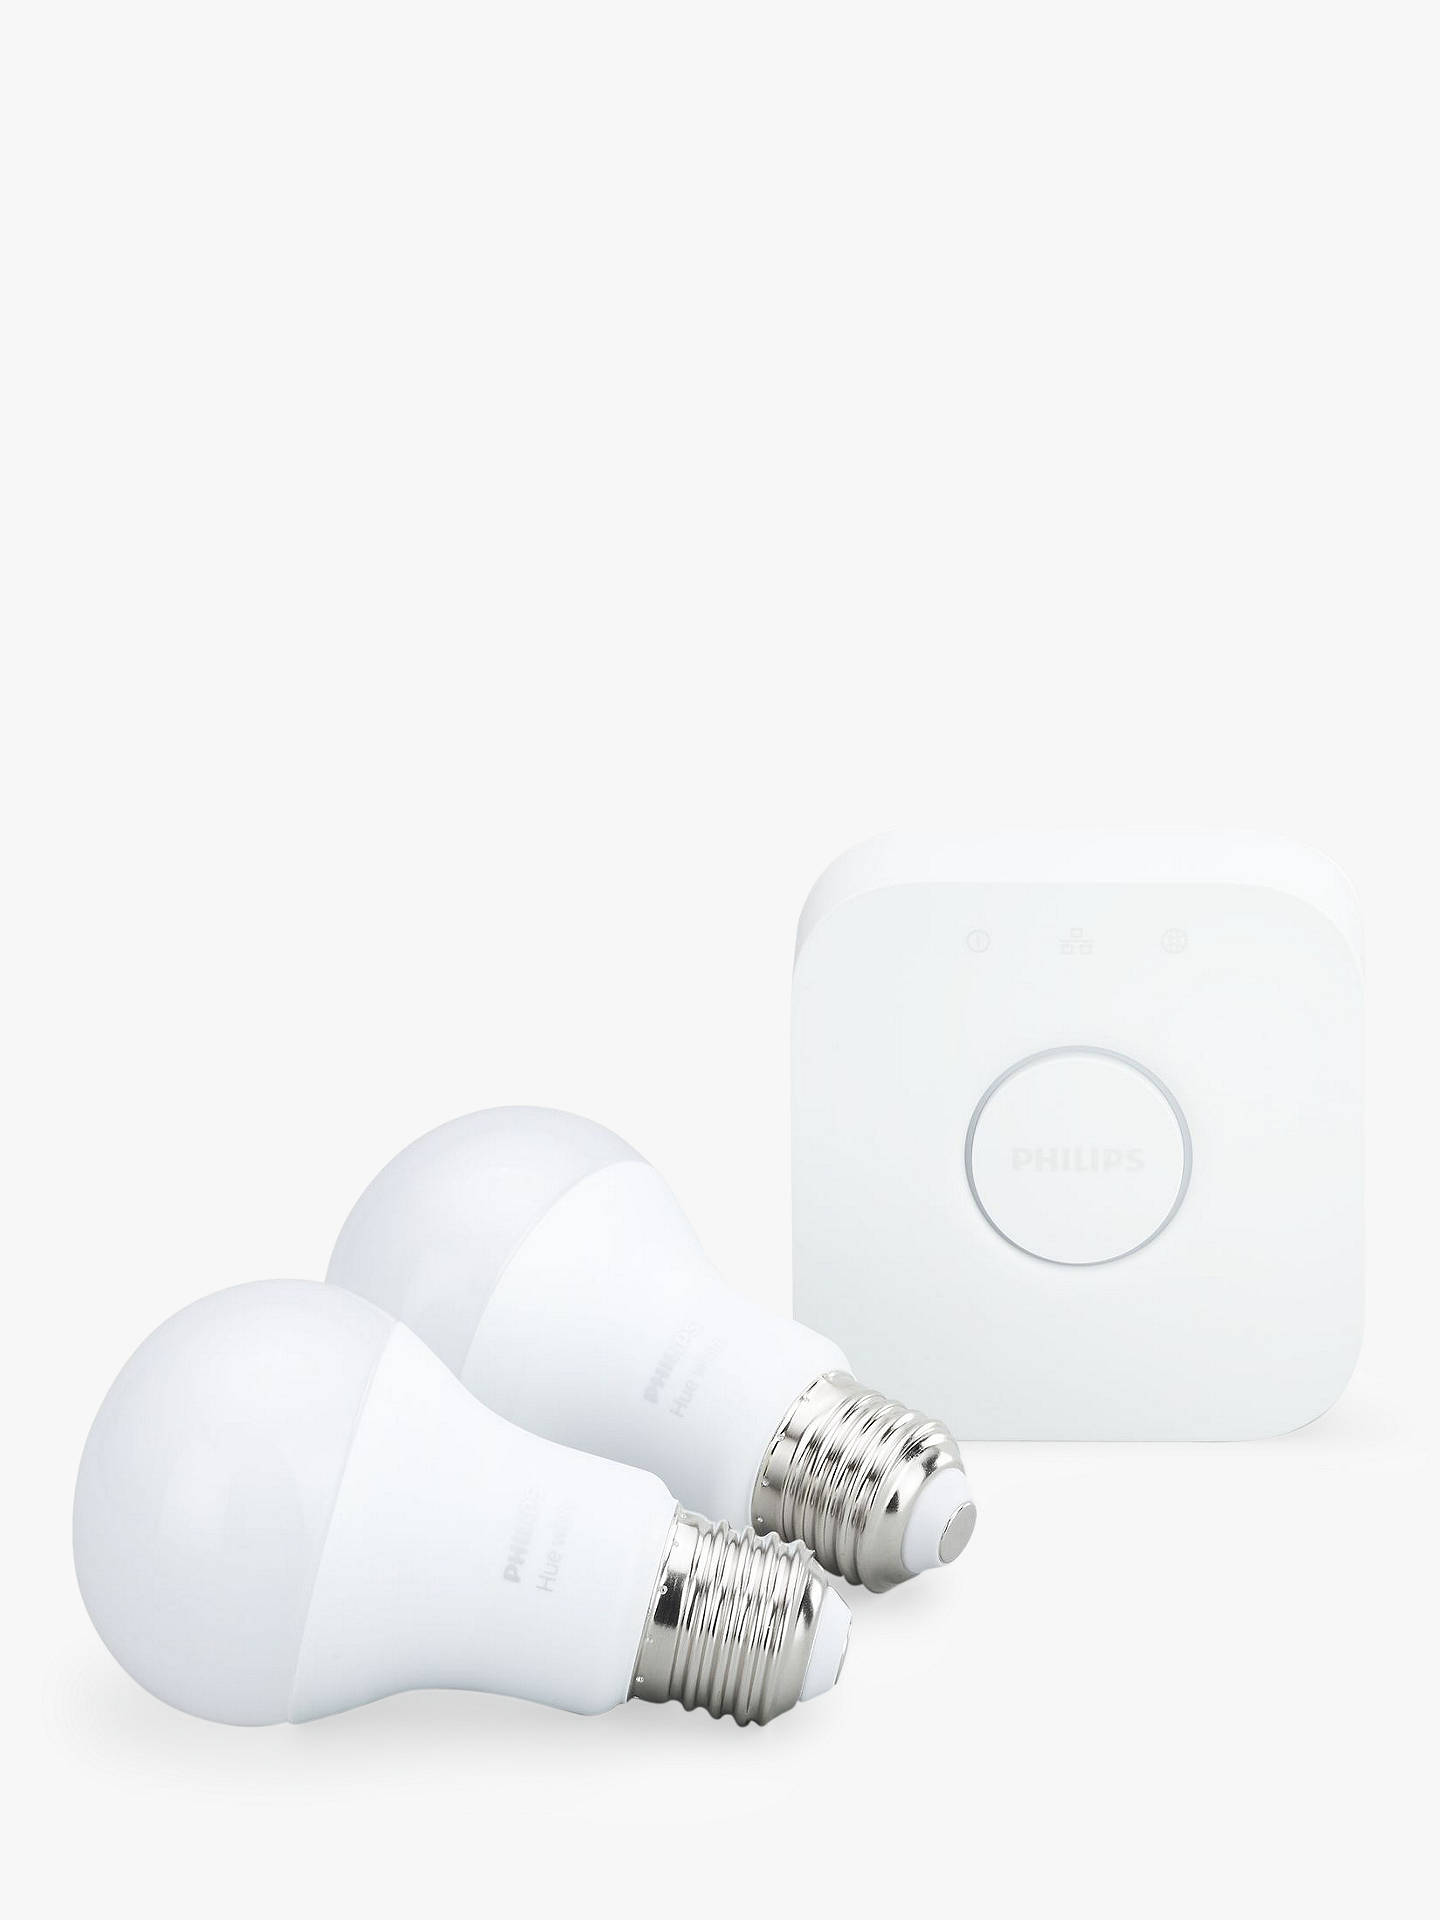 Buy Philips Hue White Personal Wireless Lighting LED Starter Kit, White Online at johnlewis.com